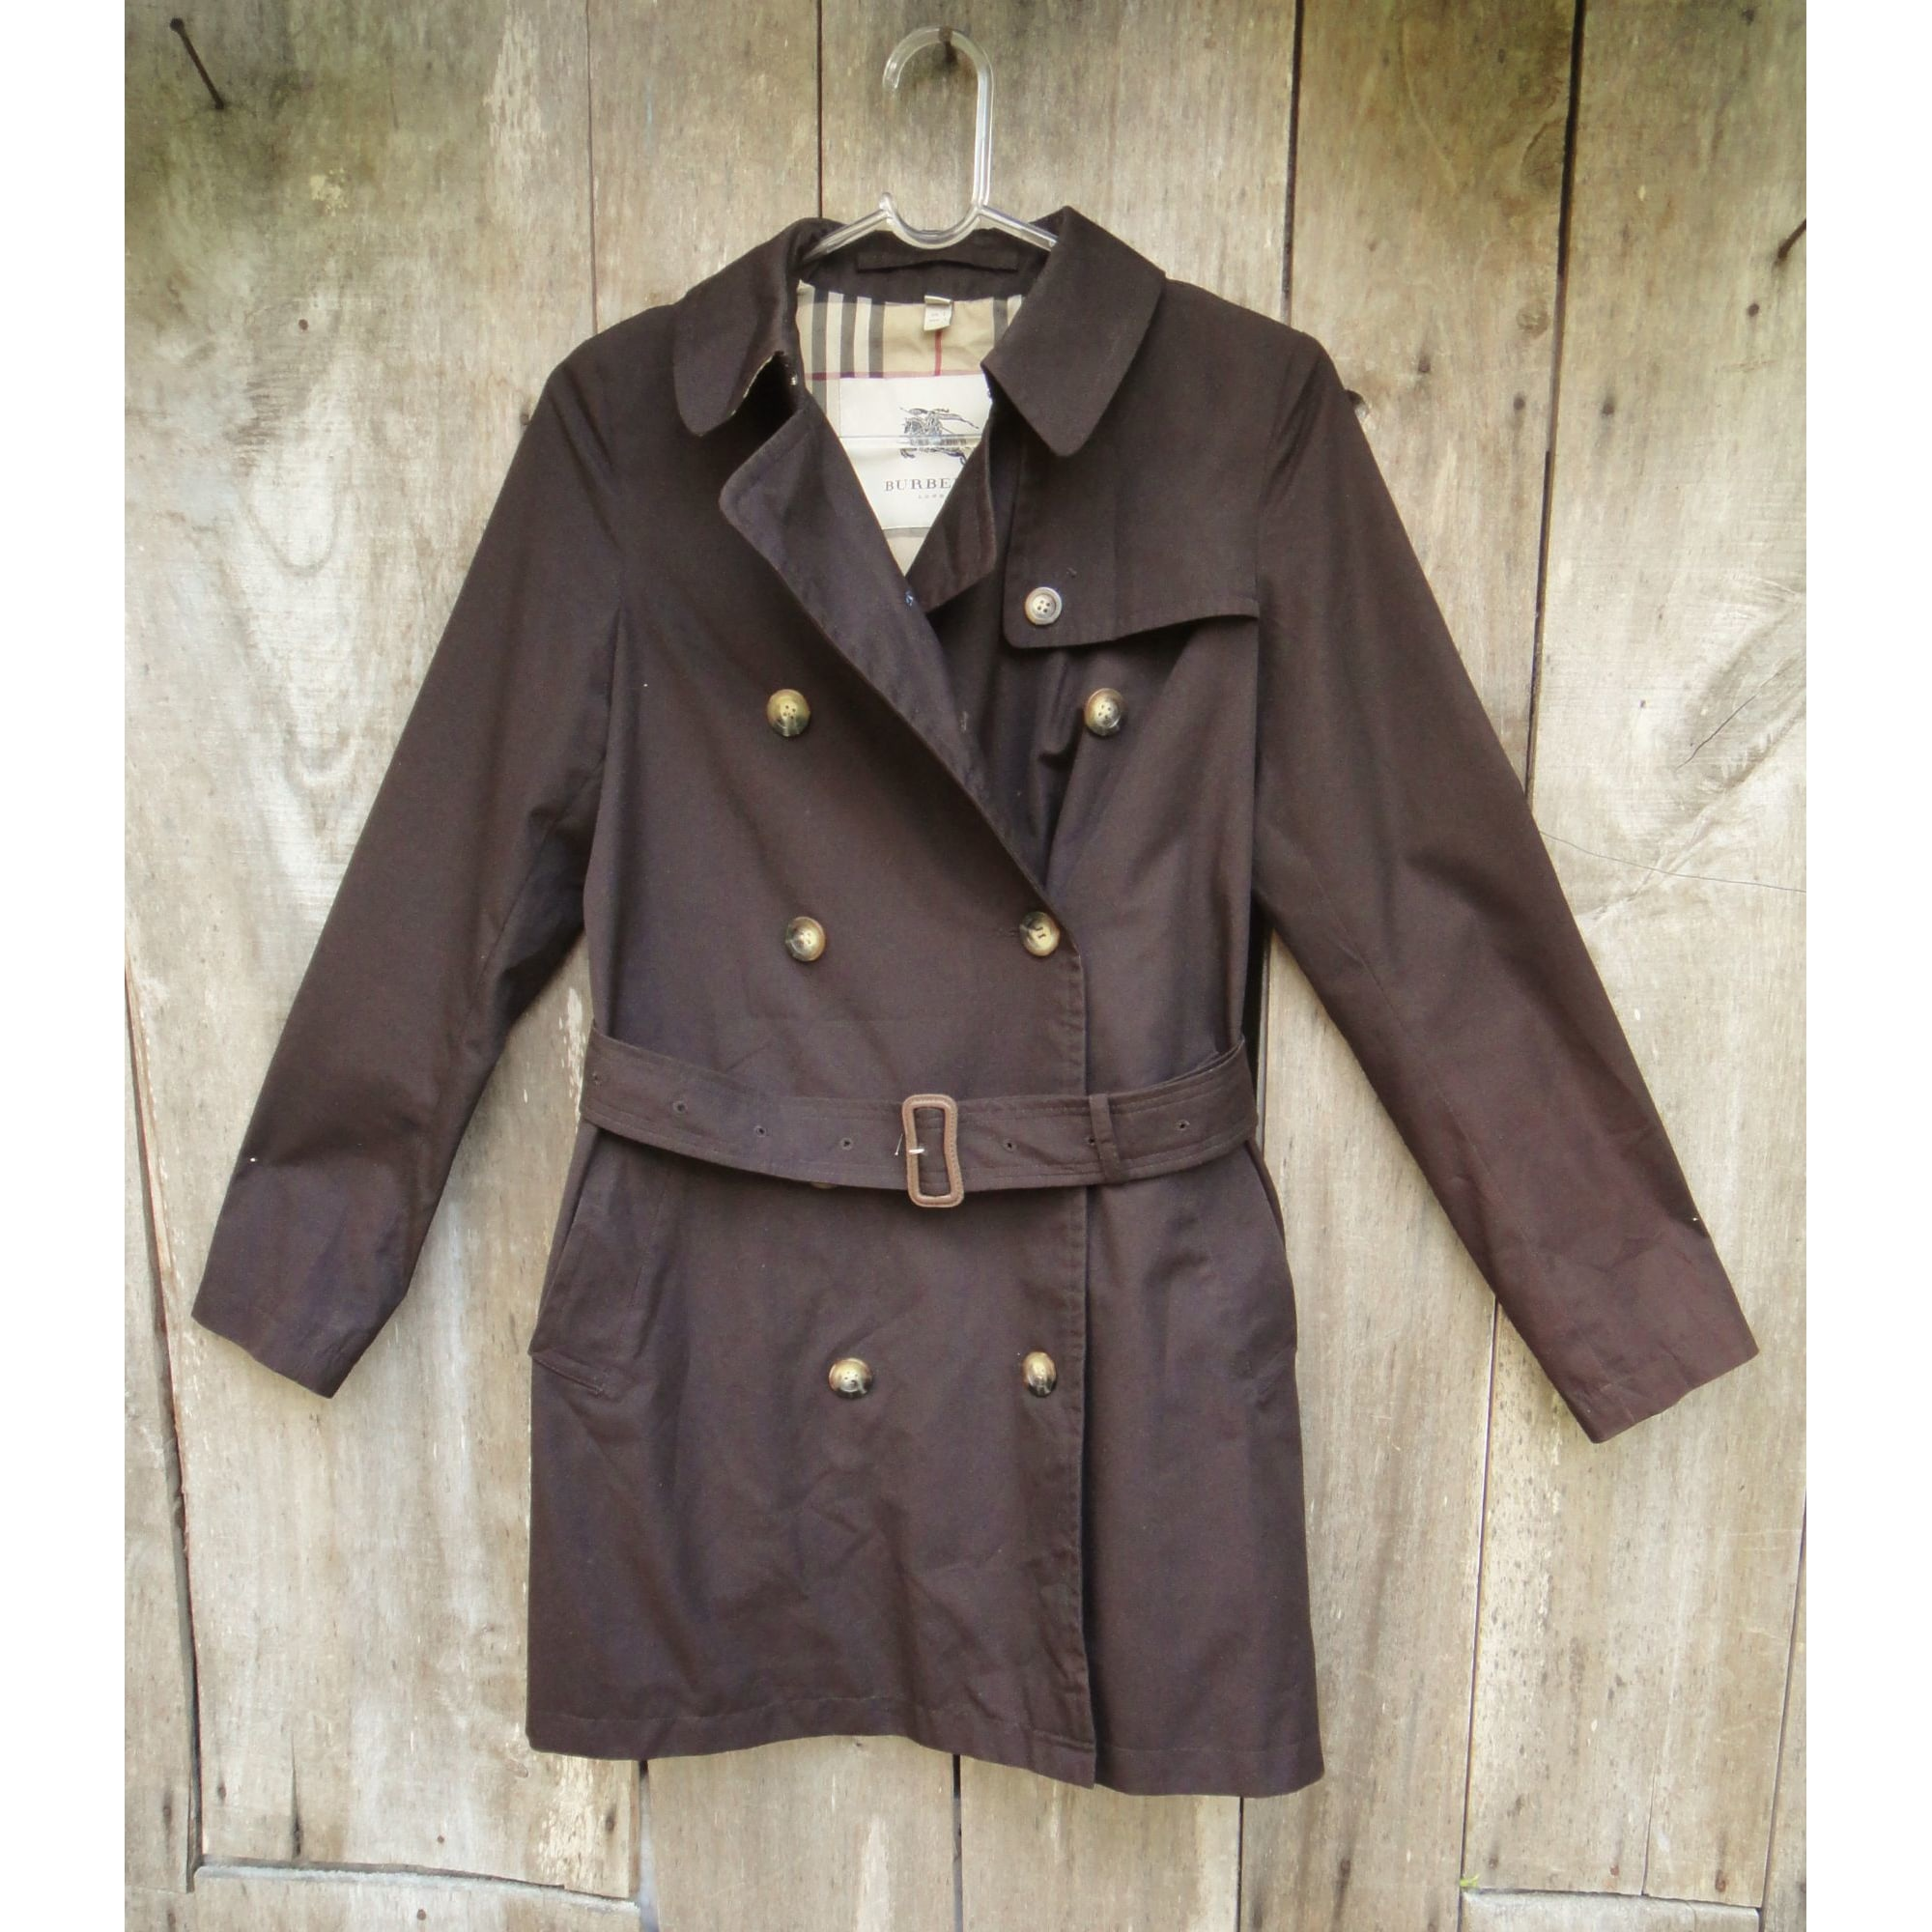 Imperméable, trench BURBERRY Marron